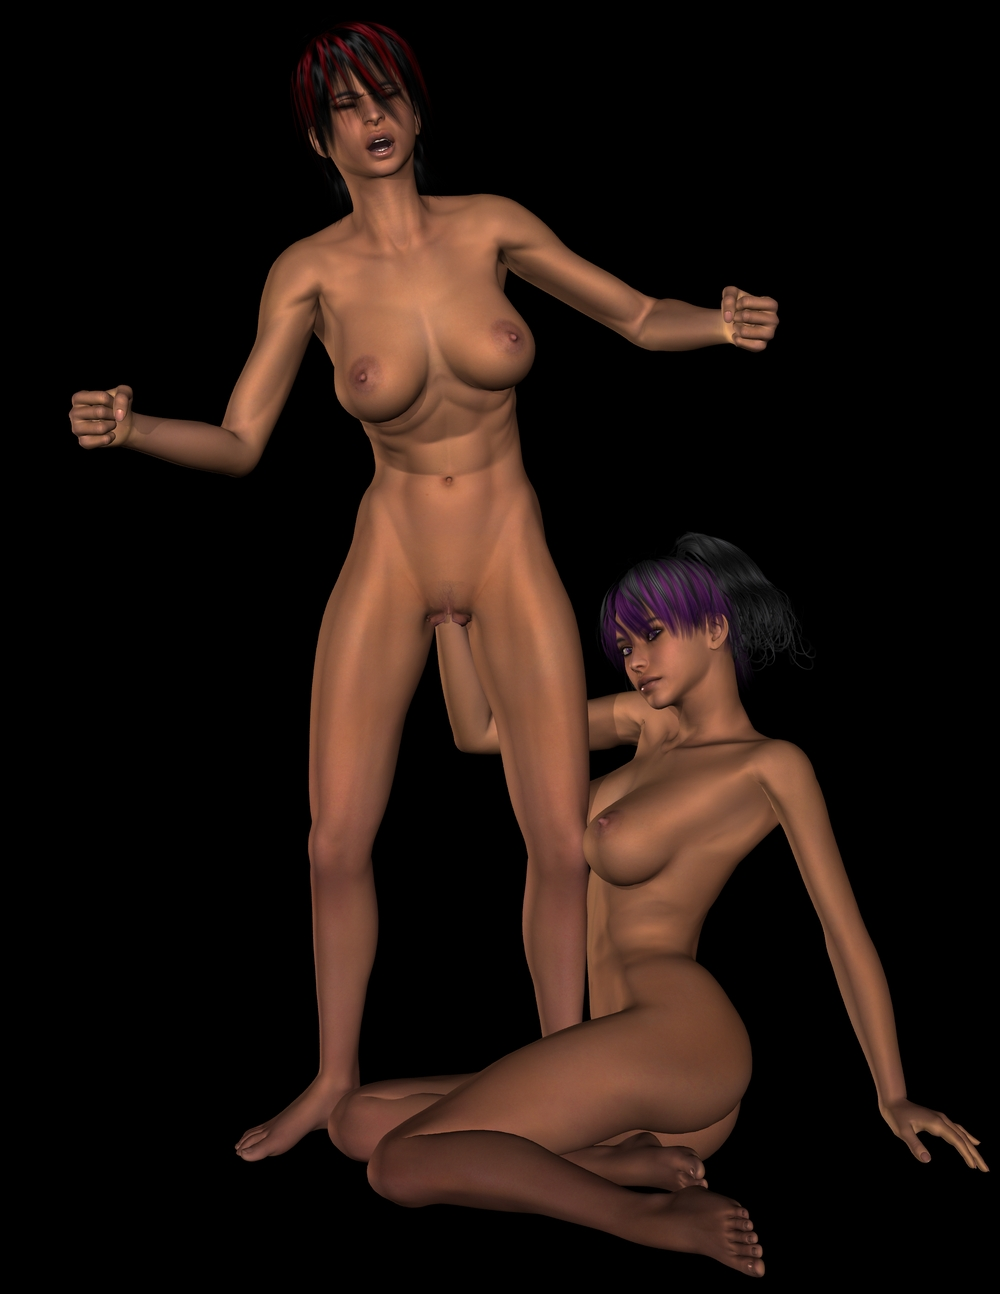 Animated fantasy creature sex porn streaming